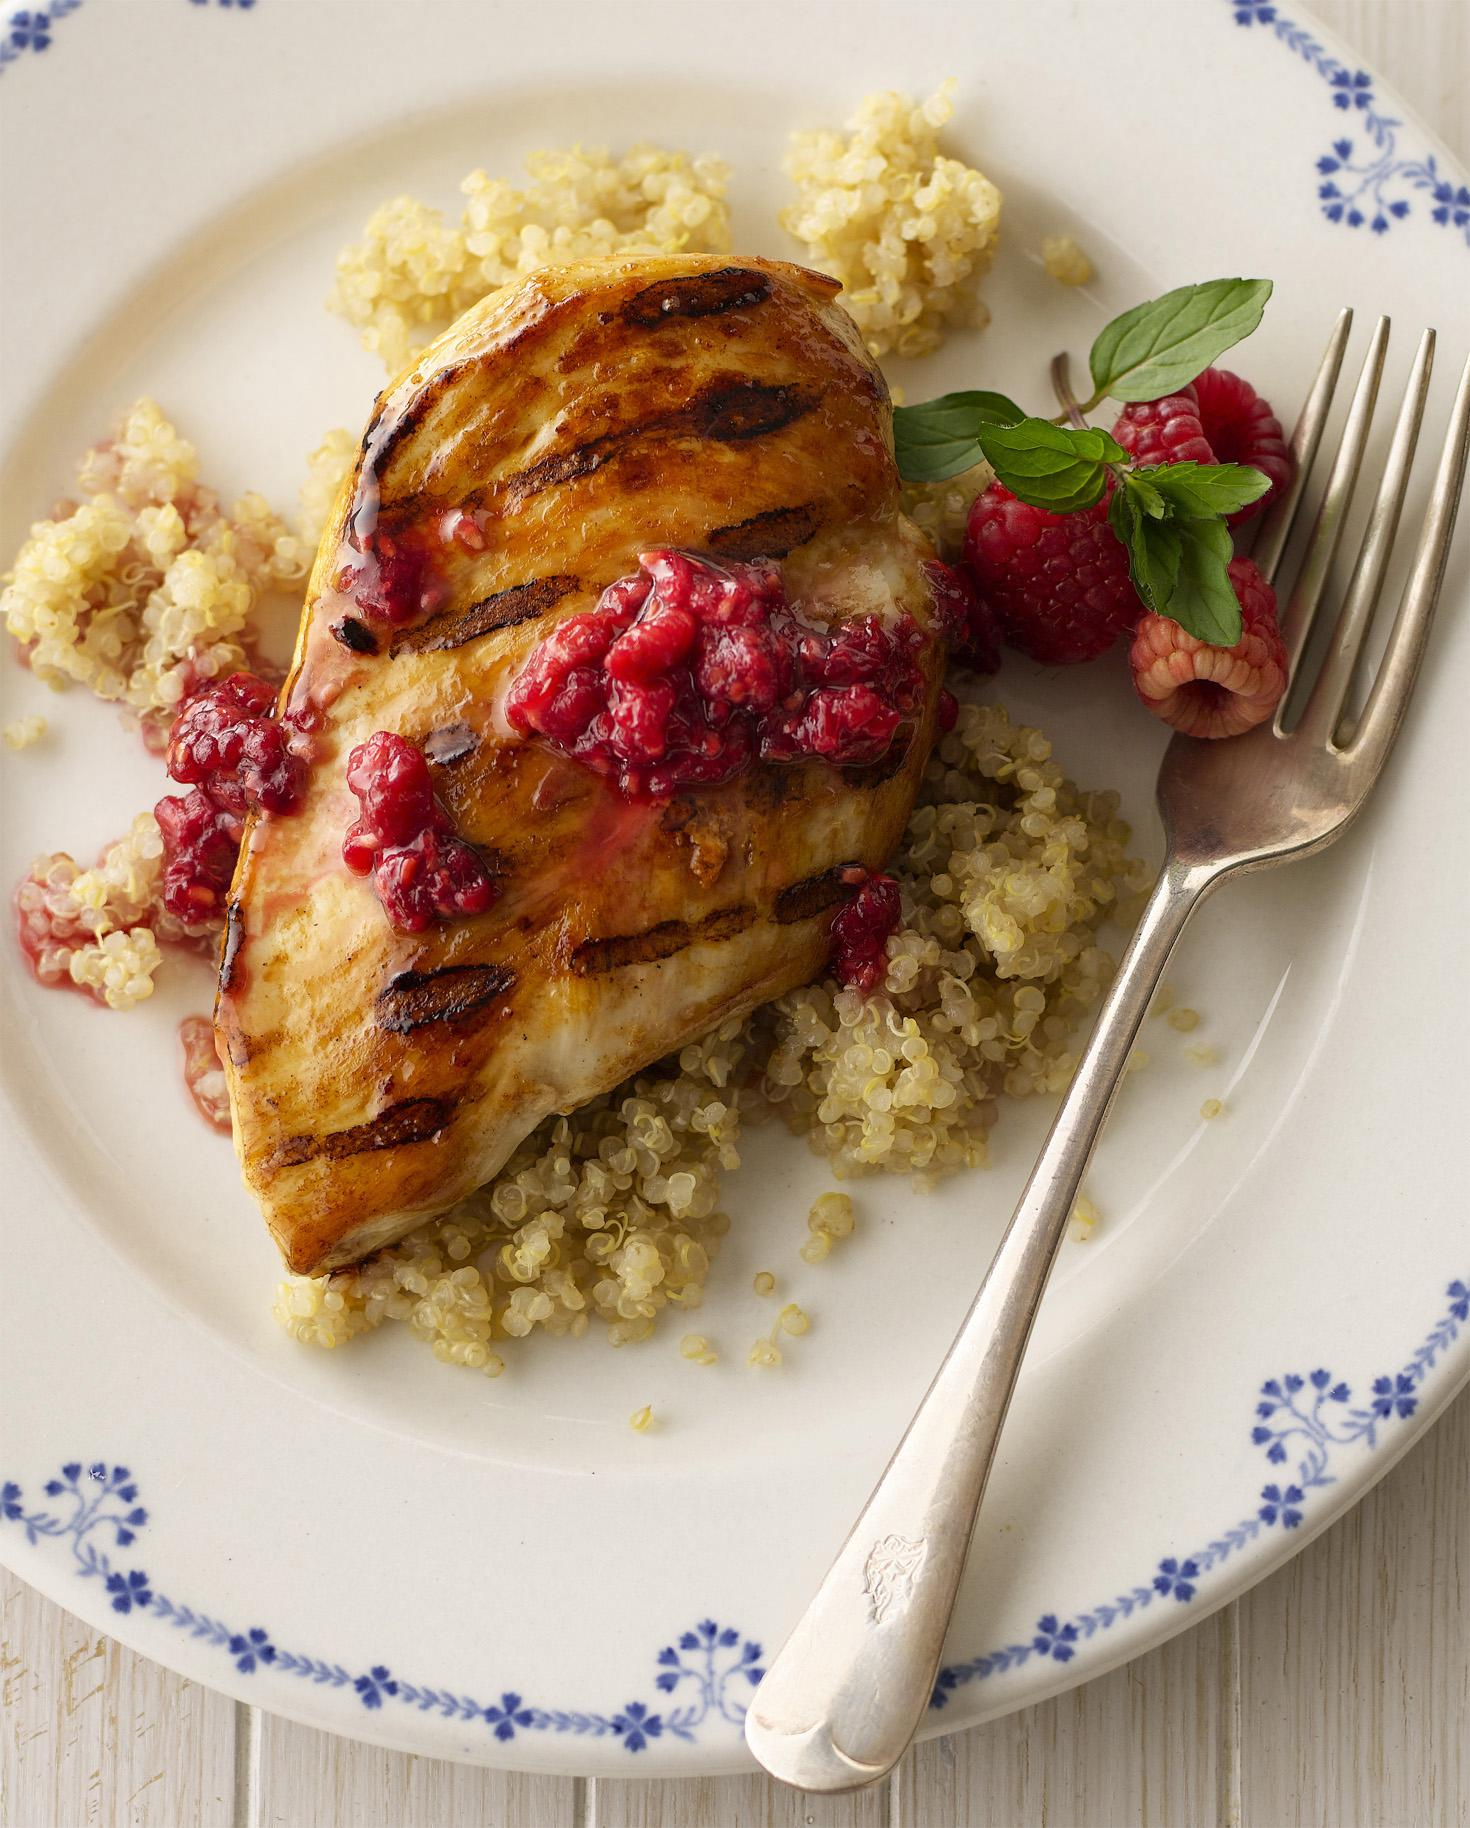 Grilled Chicken with Crushed Raspberry Vinaigrette